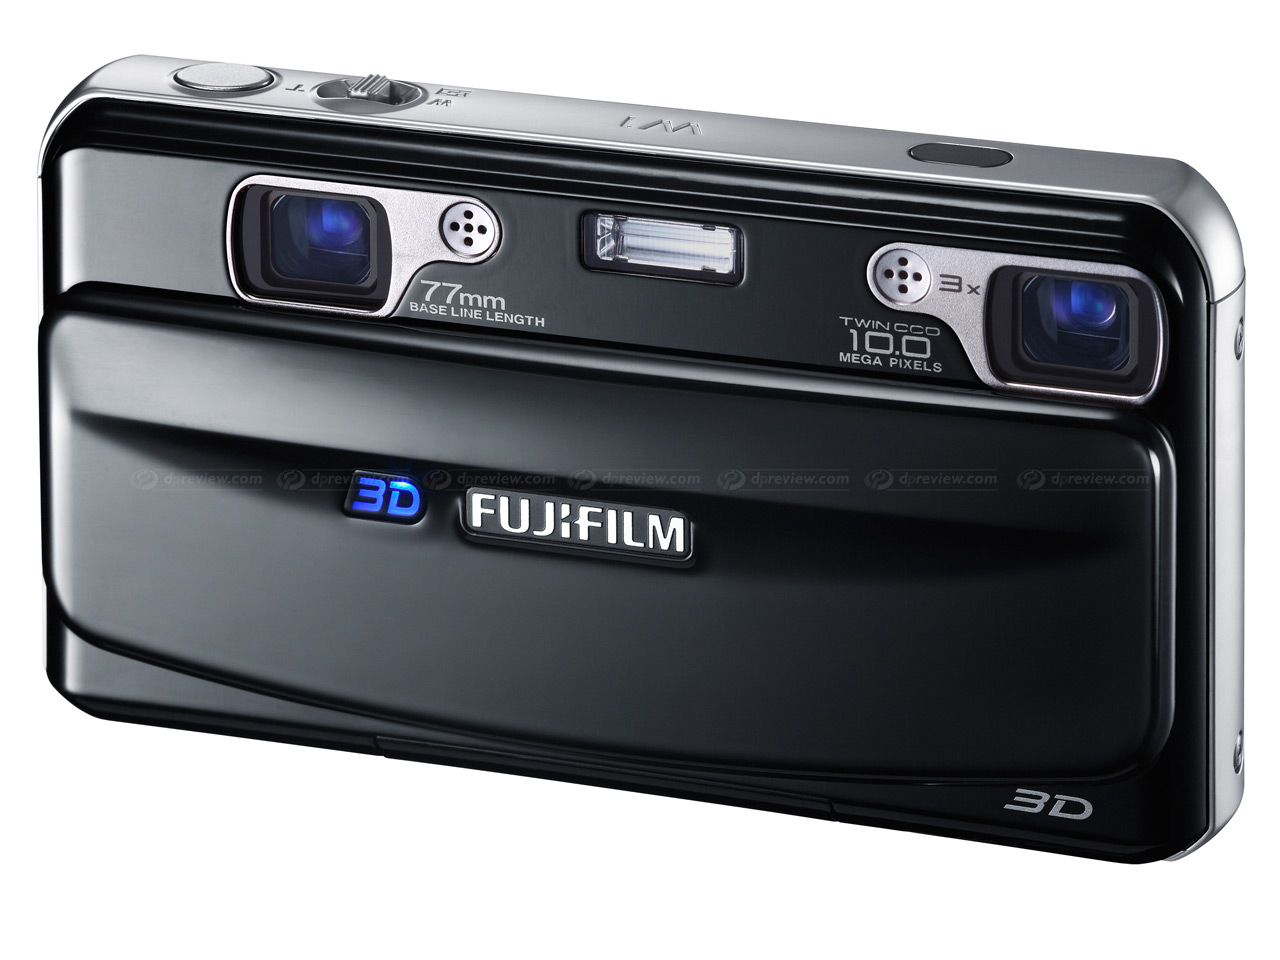 Fujifilm launches world's first 3D imaging system: Digital